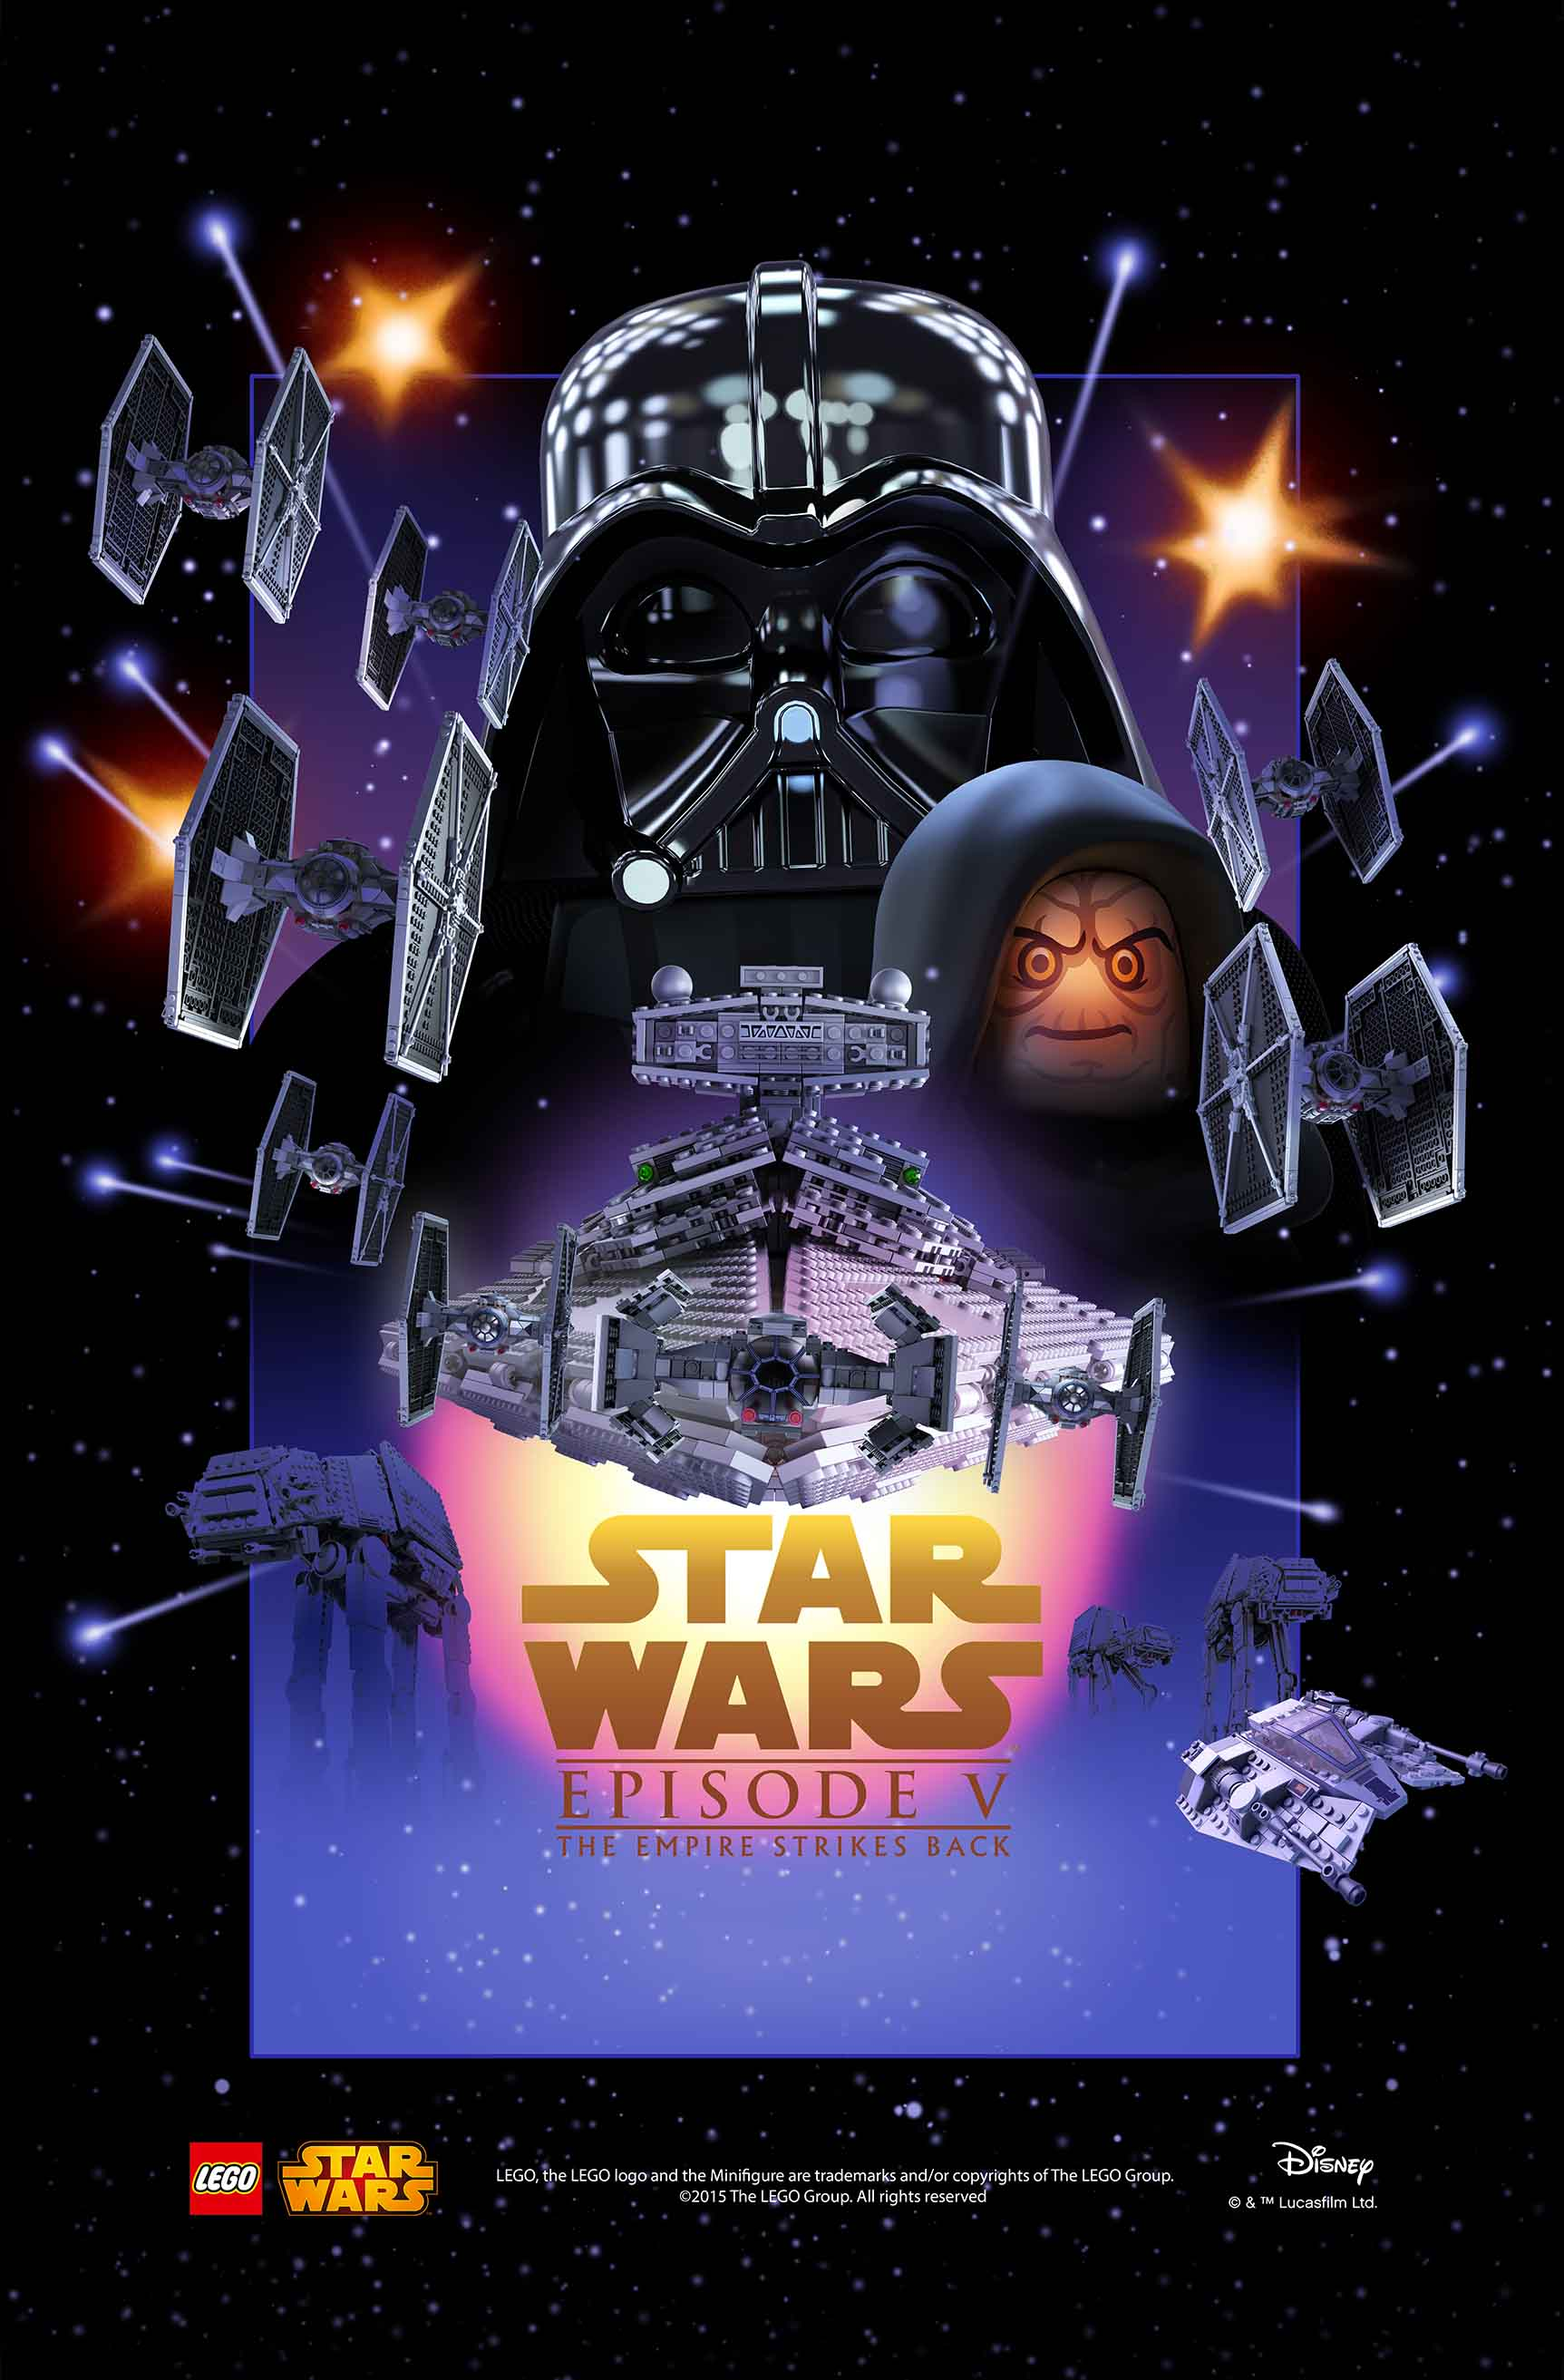 star wars movie posters get the lego treatment the escapist. Black Bedroom Furniture Sets. Home Design Ideas